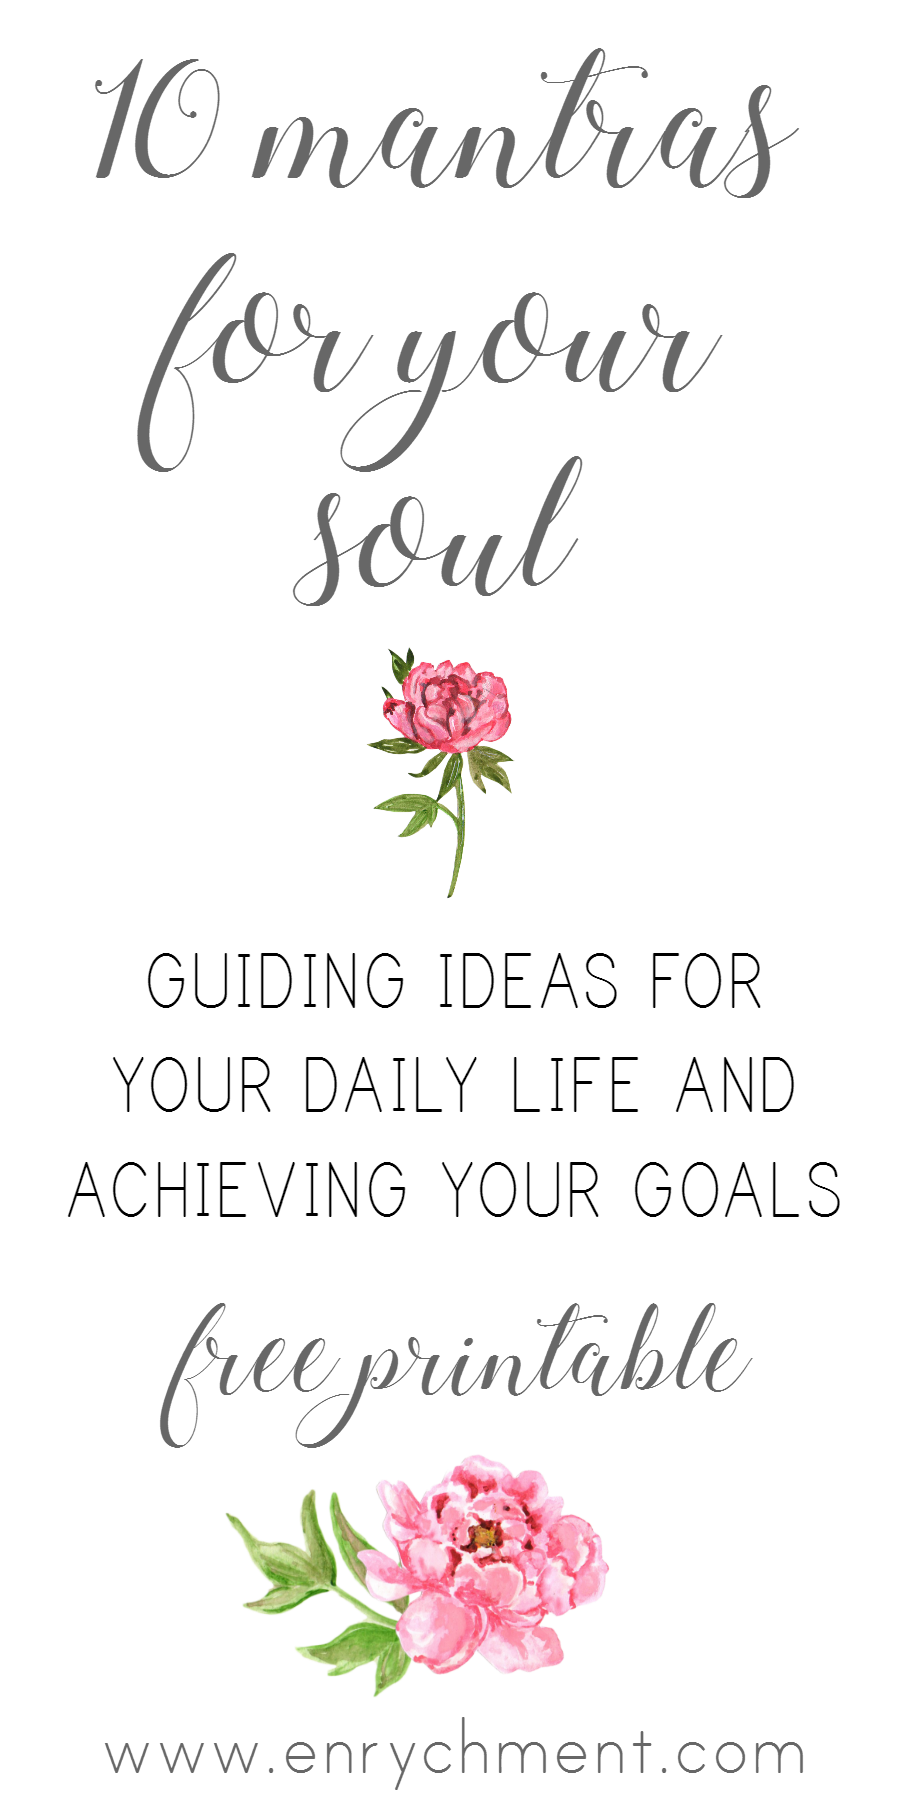 10 Mantras for your soul: Guiding ideas for your daily life and achieving your goals